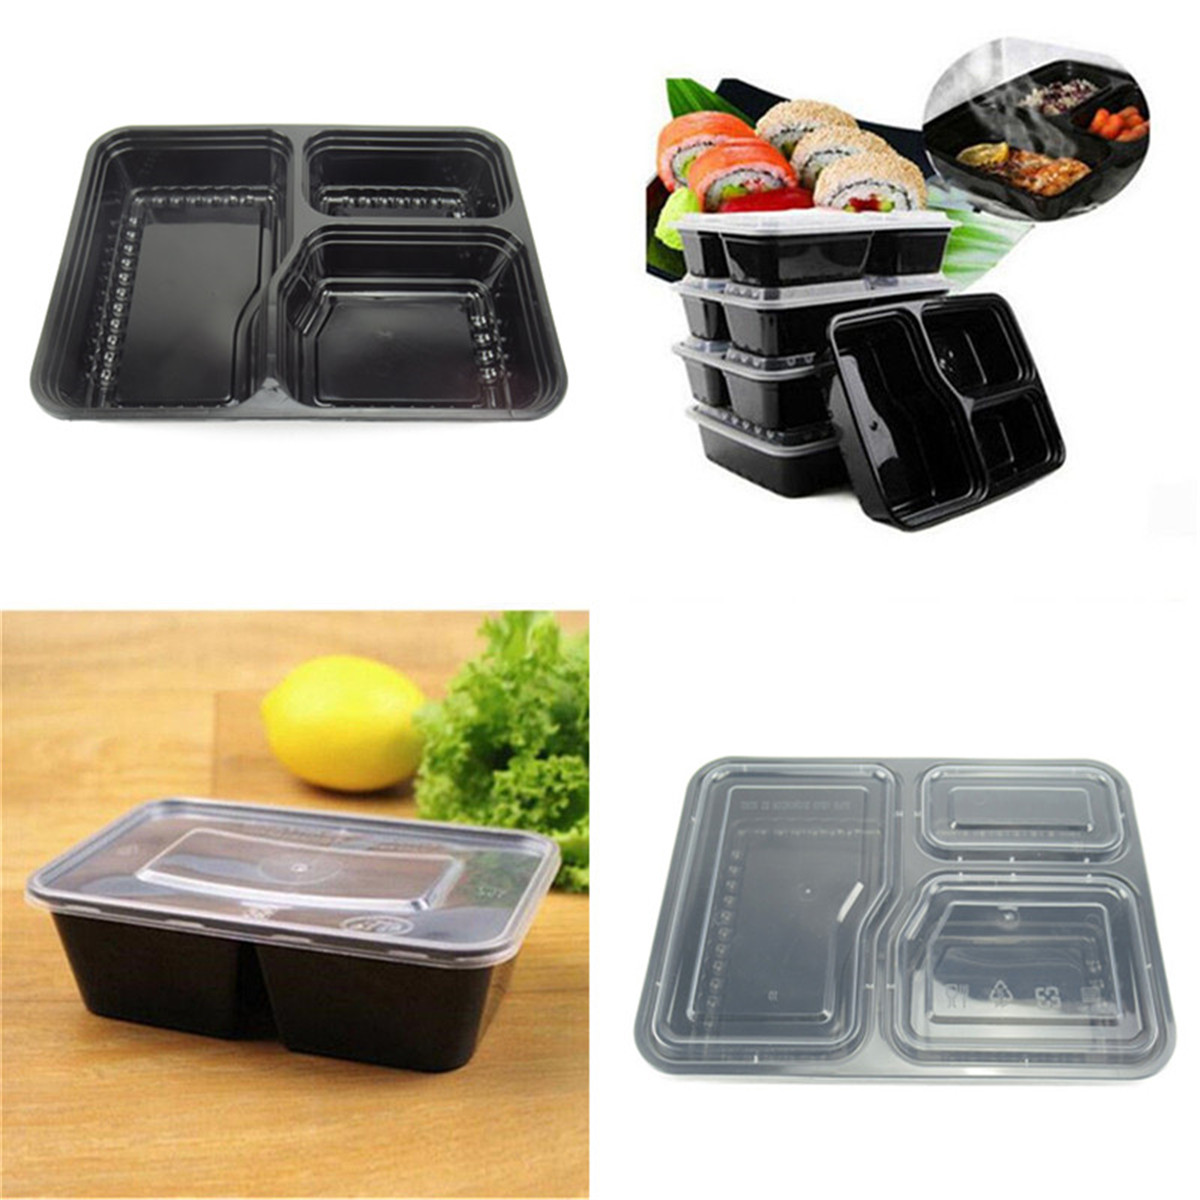 Details About 1 2 5pcs Meal Prep Food Containers Compartment Lunch Box Microwavable With Lids